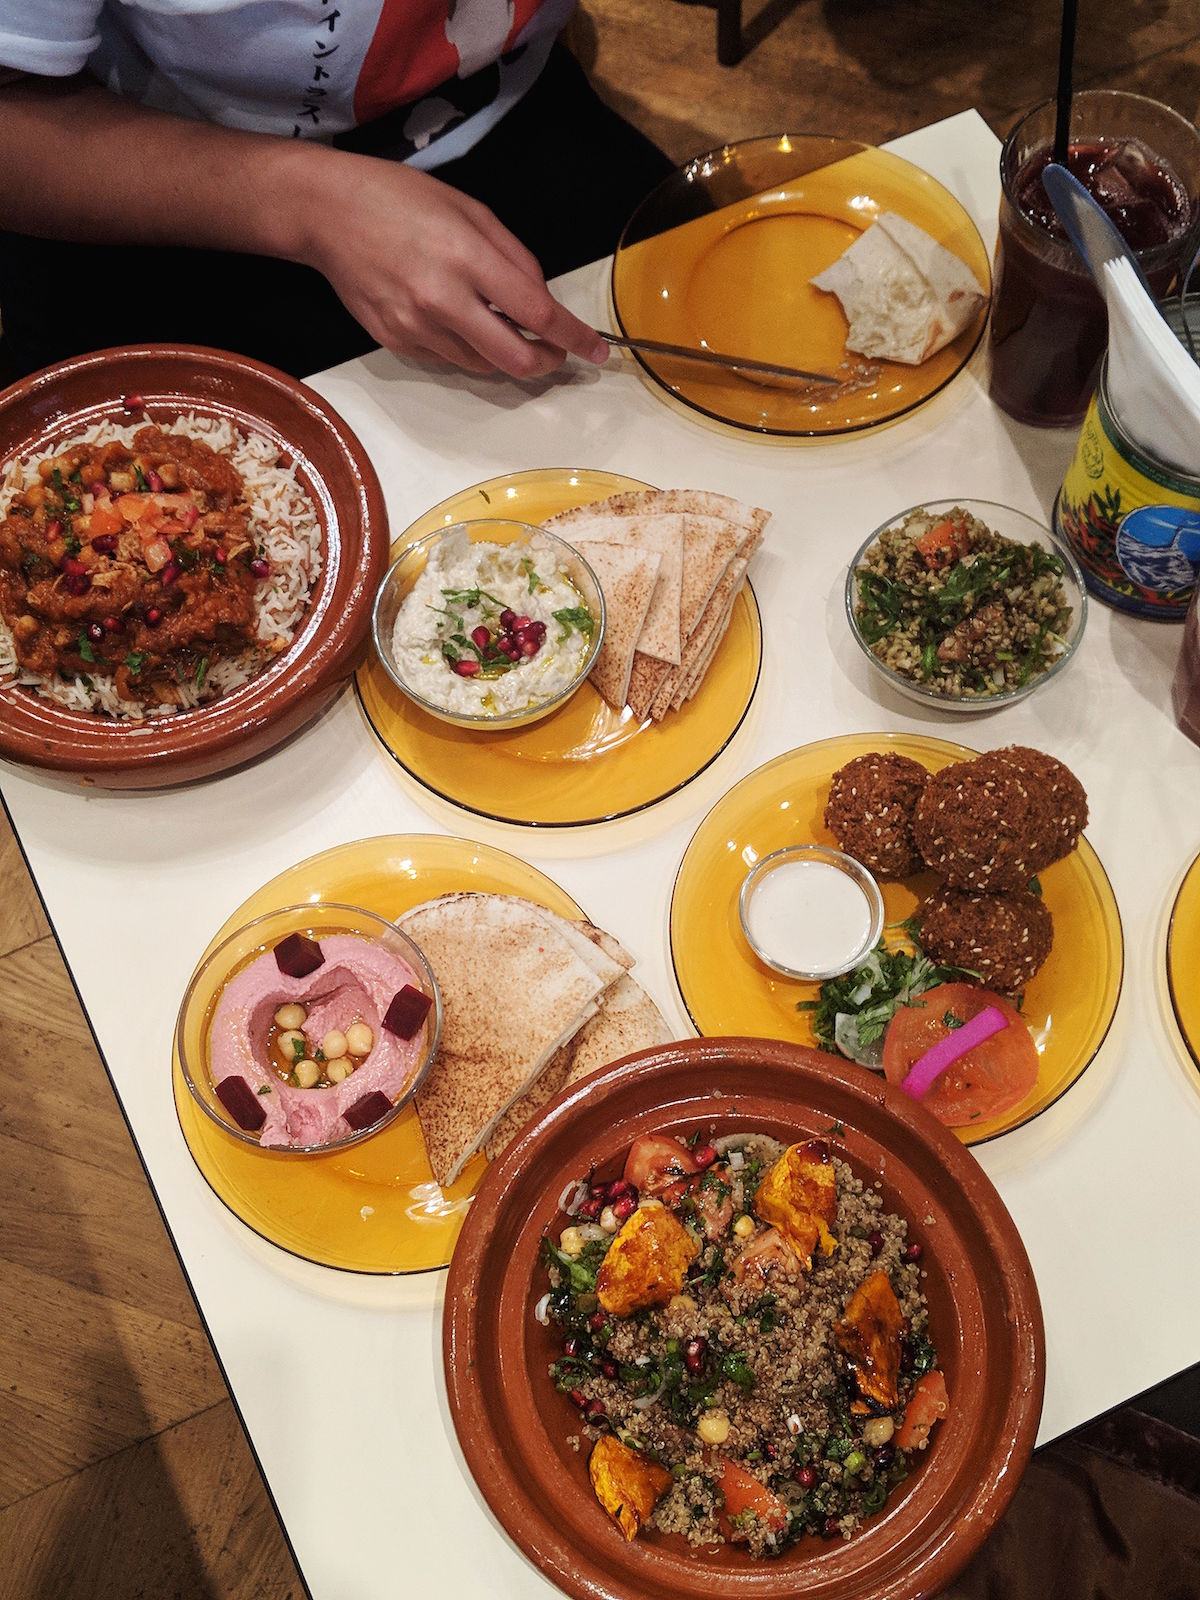 The vegan feasting menu at Comptoir Libanais where two can dine for £19.95